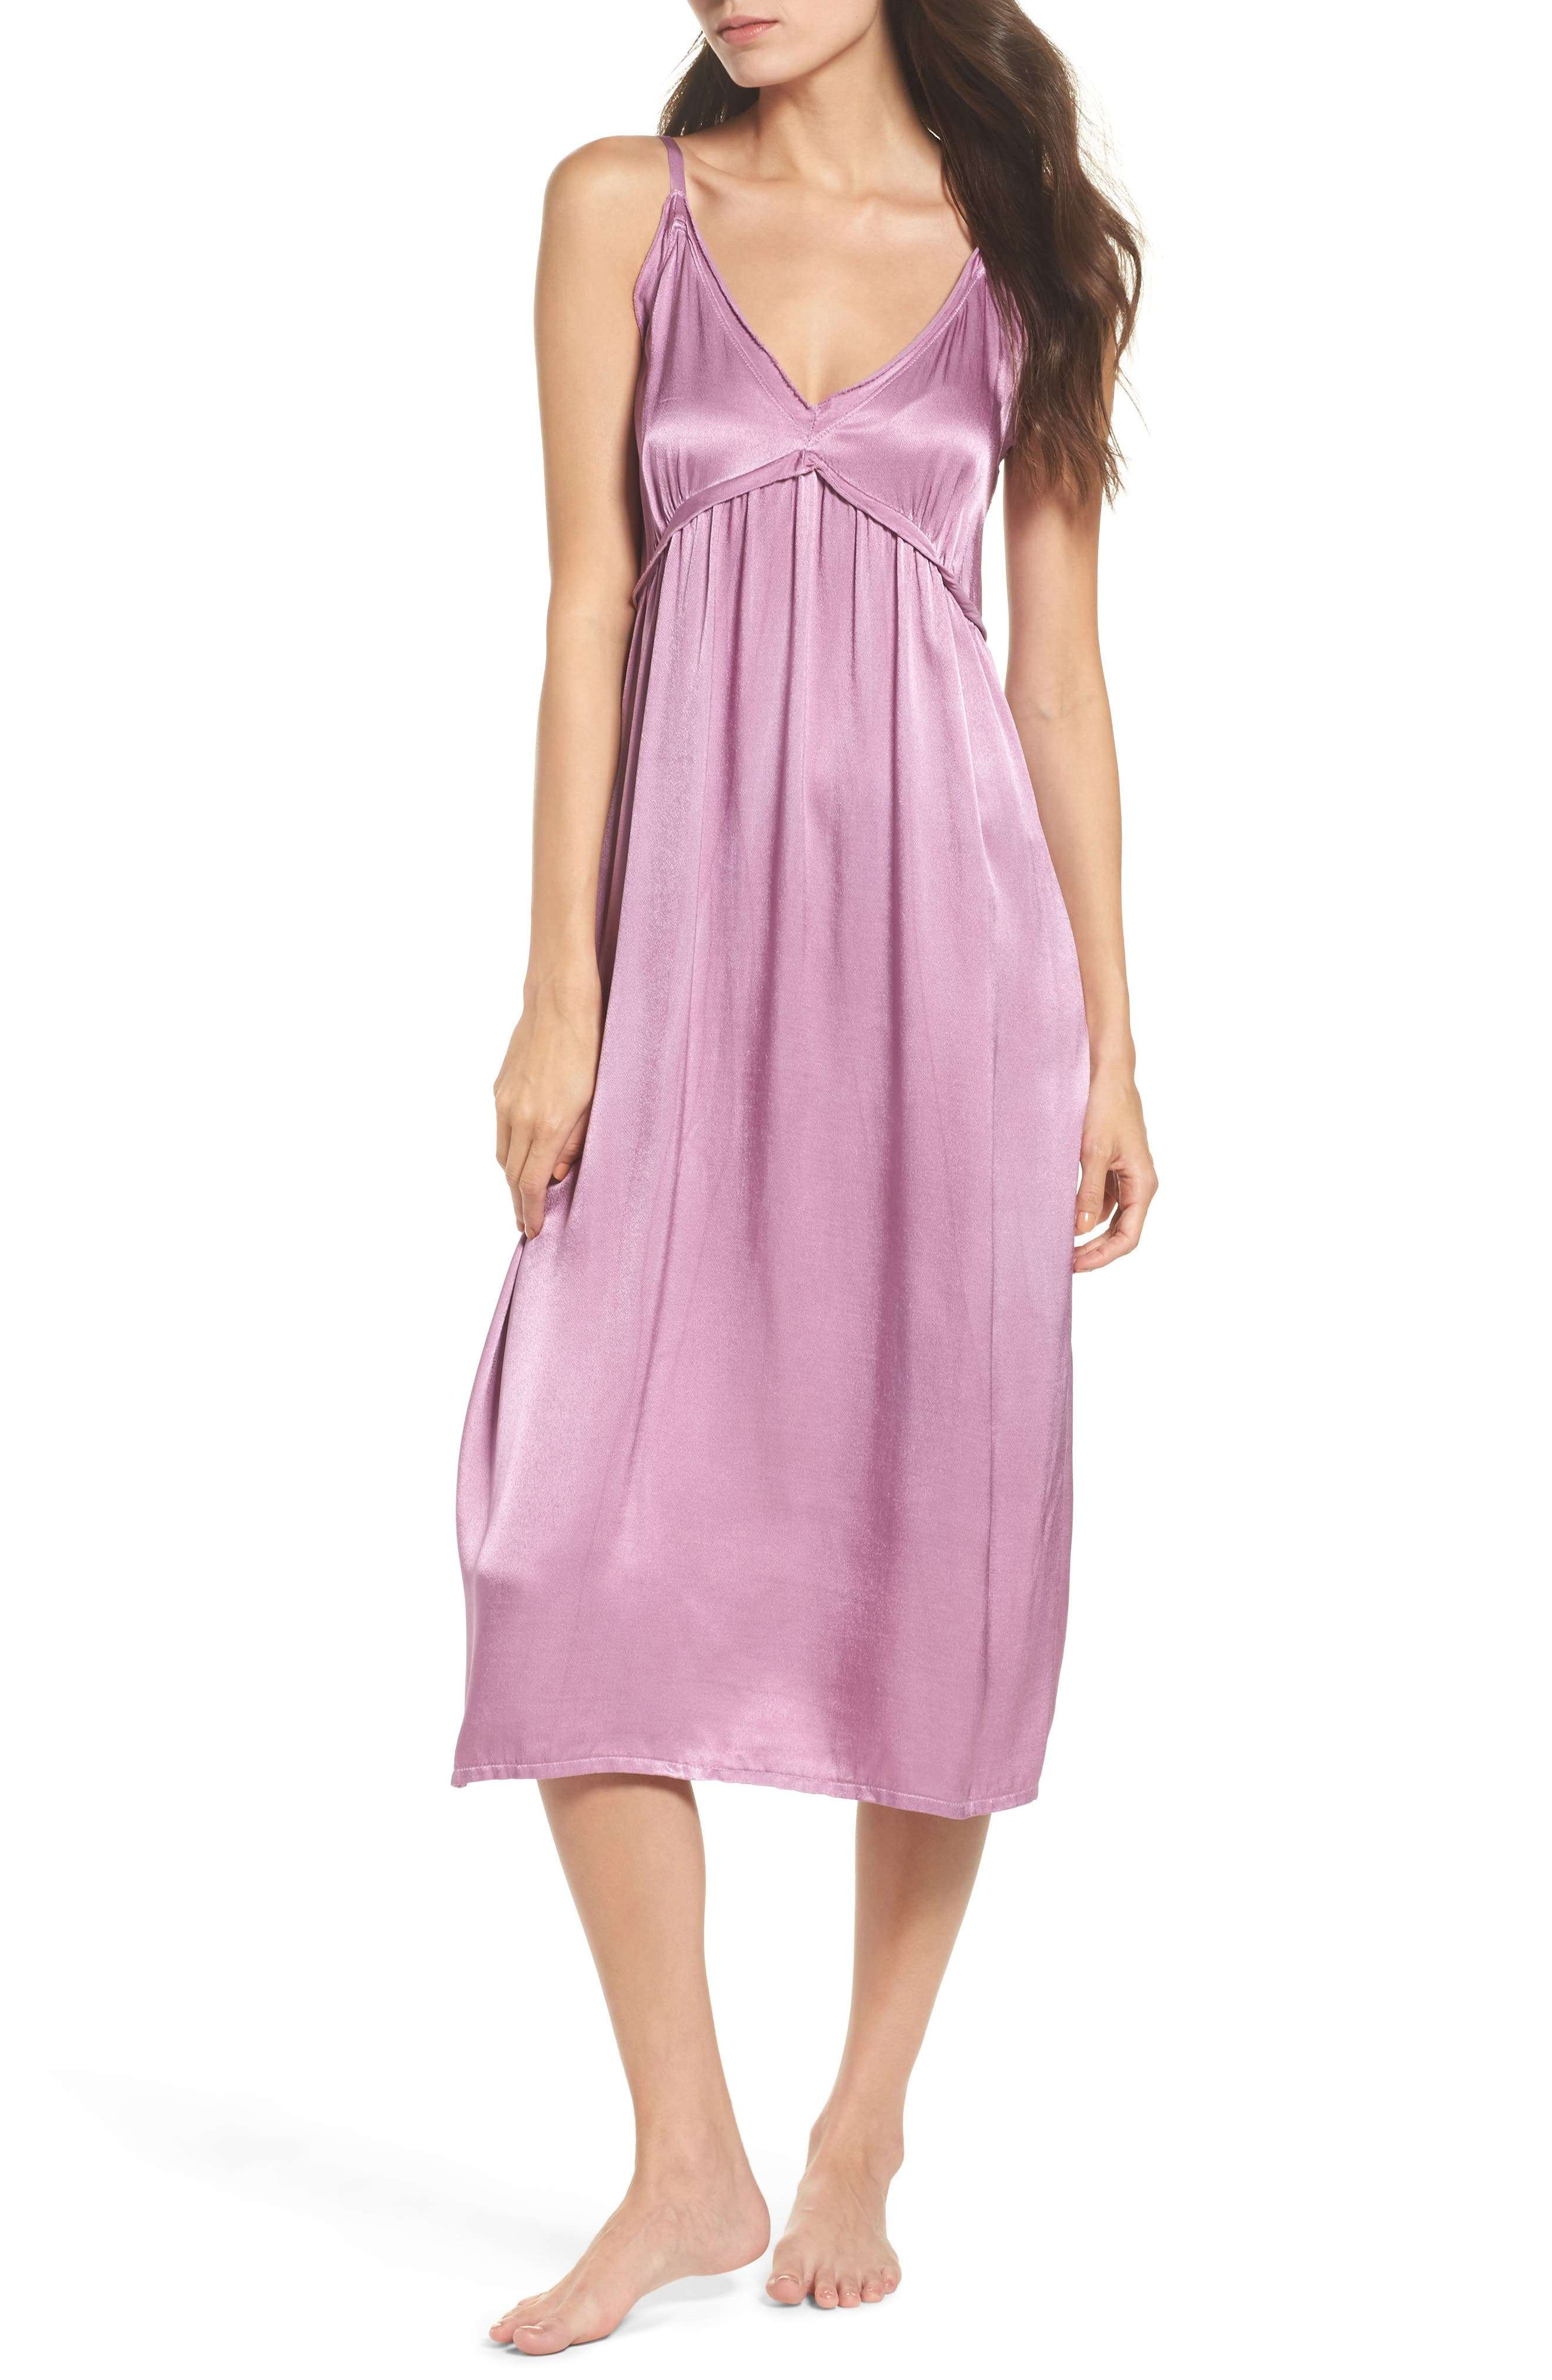 Marigold Satin Nightgown,                         Main,                         color, Haze